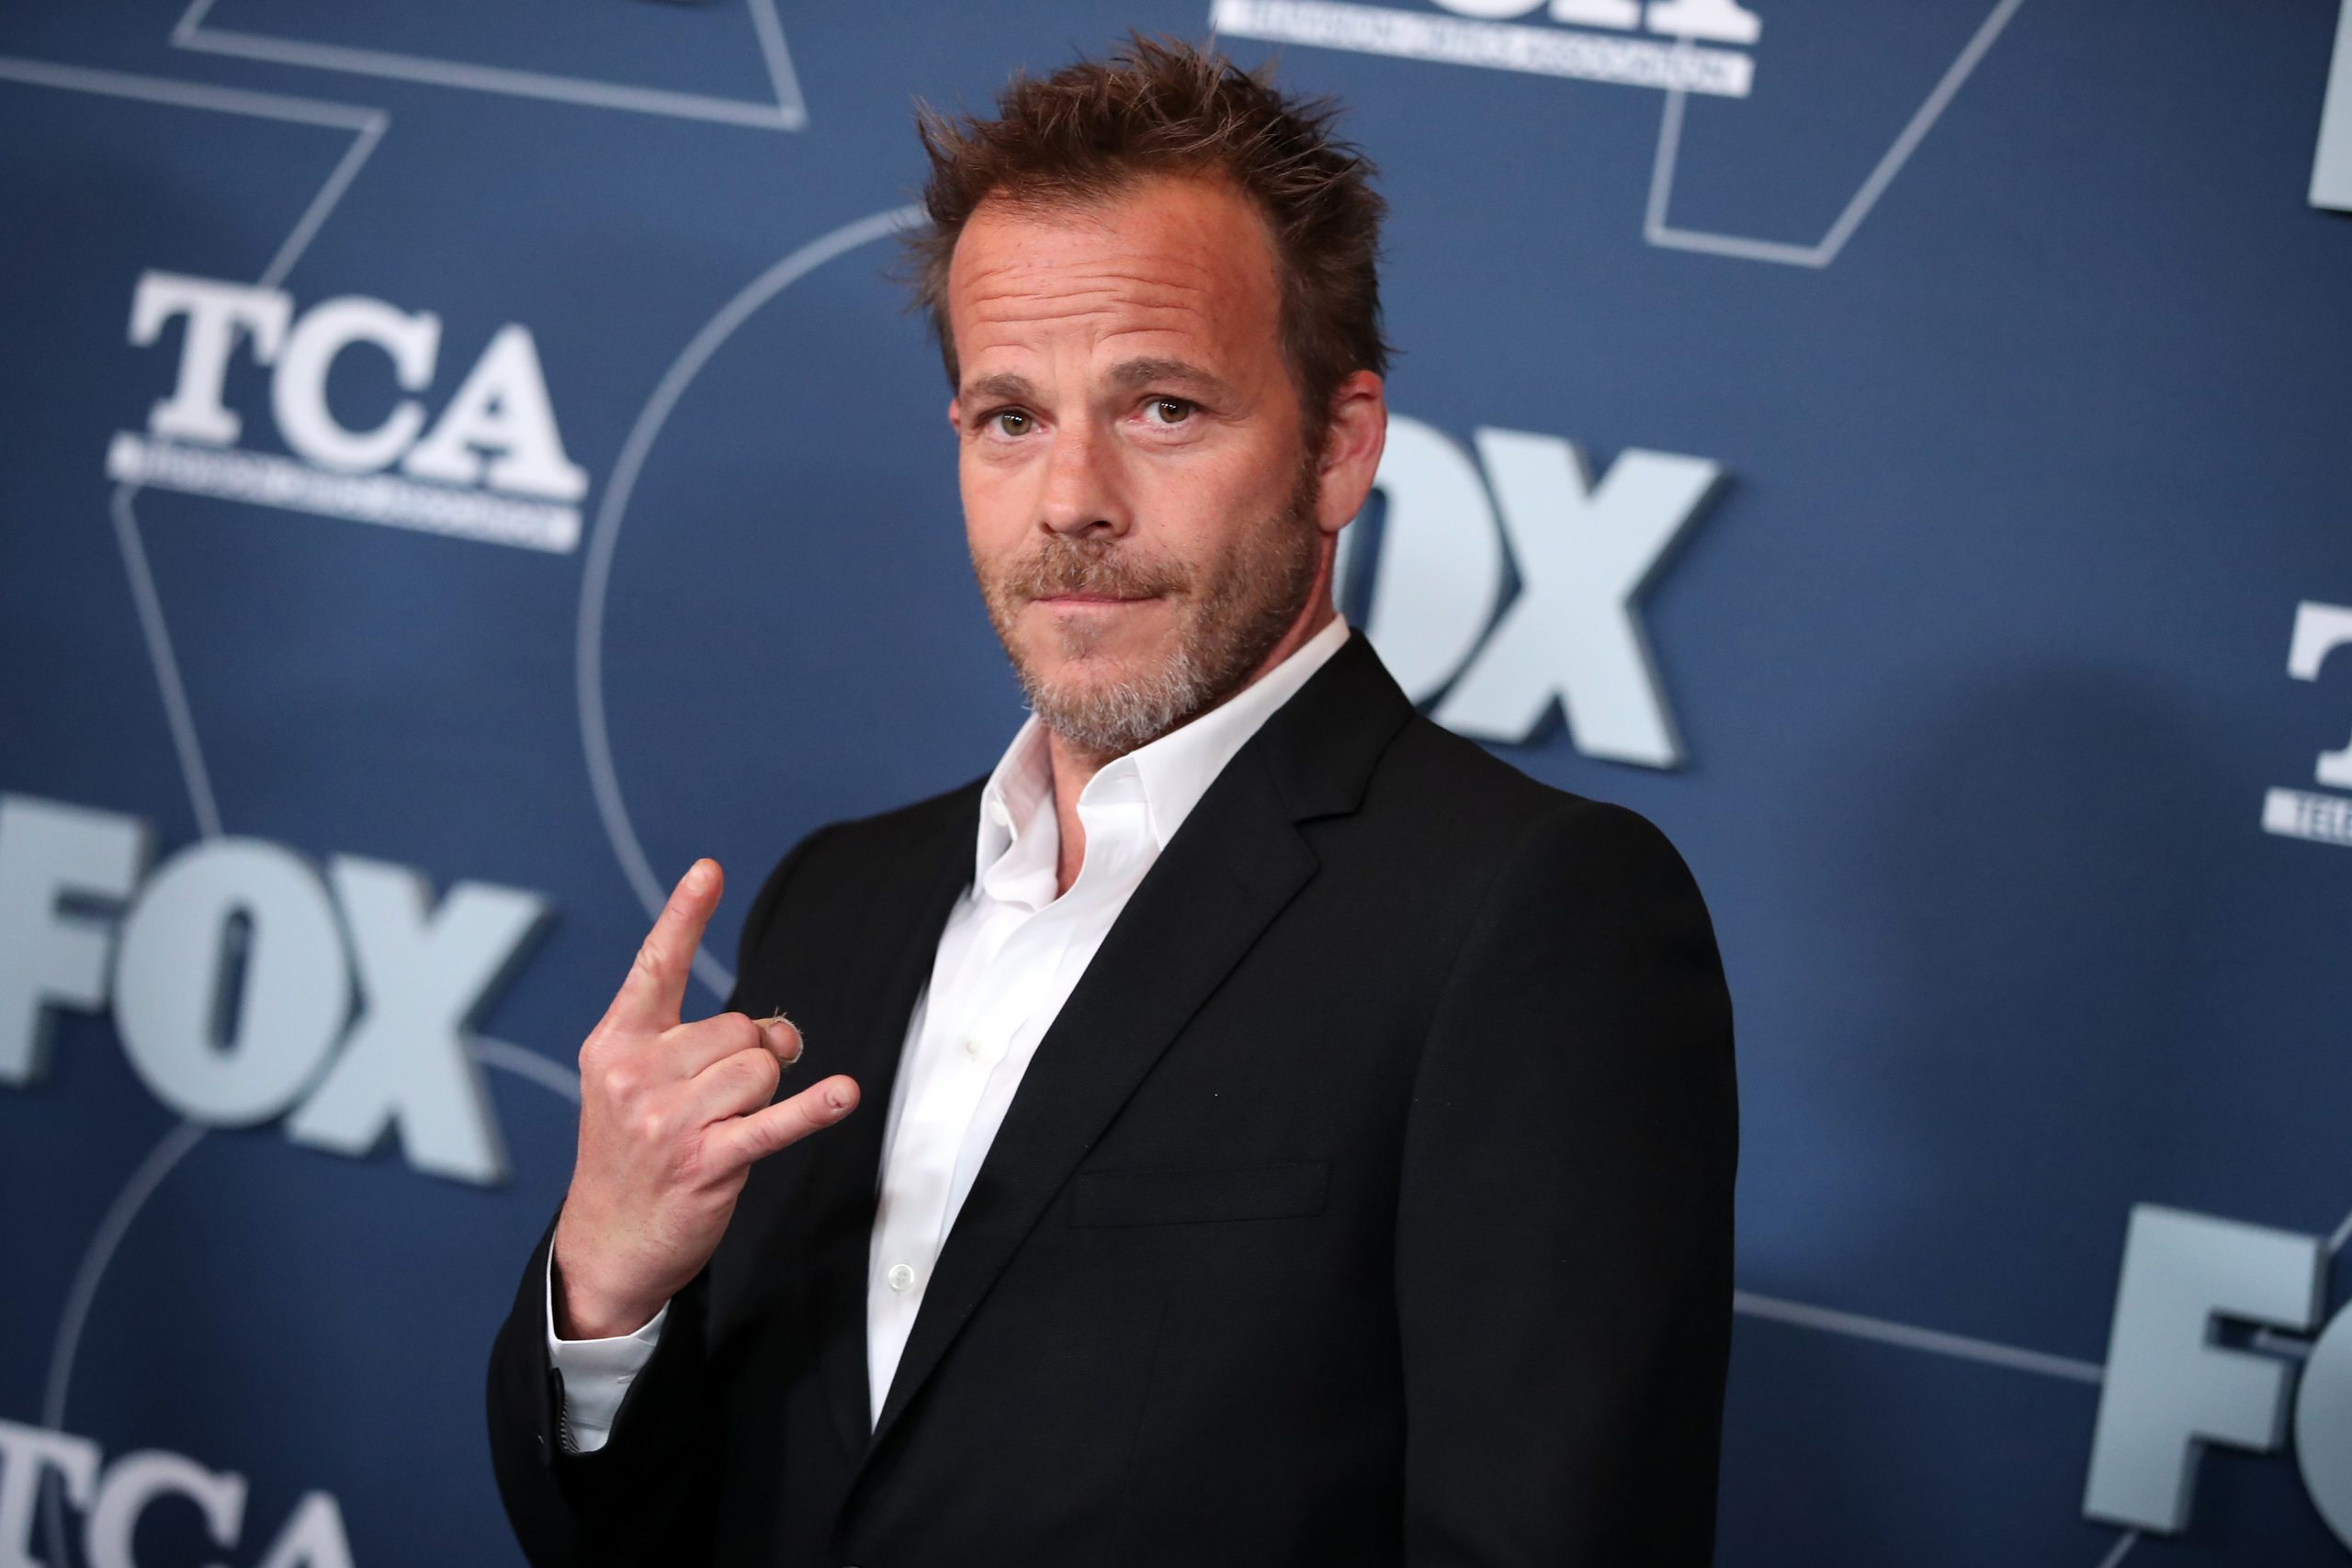 gettyimages 1198151162 scaled 20 Things You Might Not Have Known About Stephen Dorff